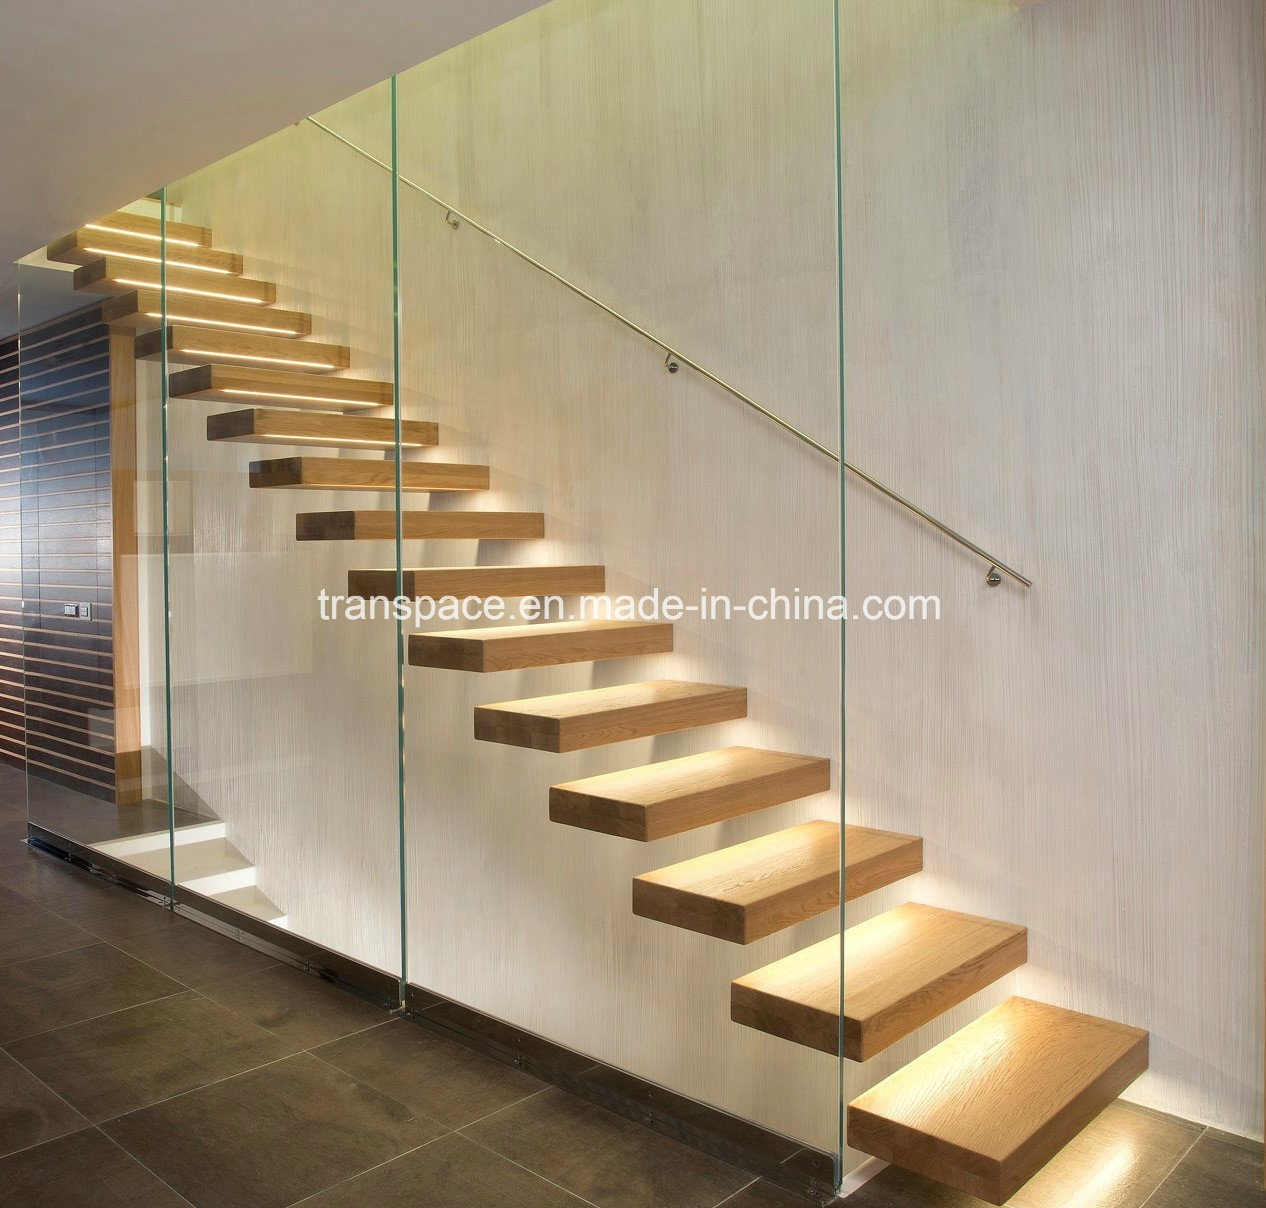 China Simple Floating Interior Wood Stairs Design Home Stairs | New Home Stairs Design | Beautiful | Entrance | Iron | Stairway | Wall